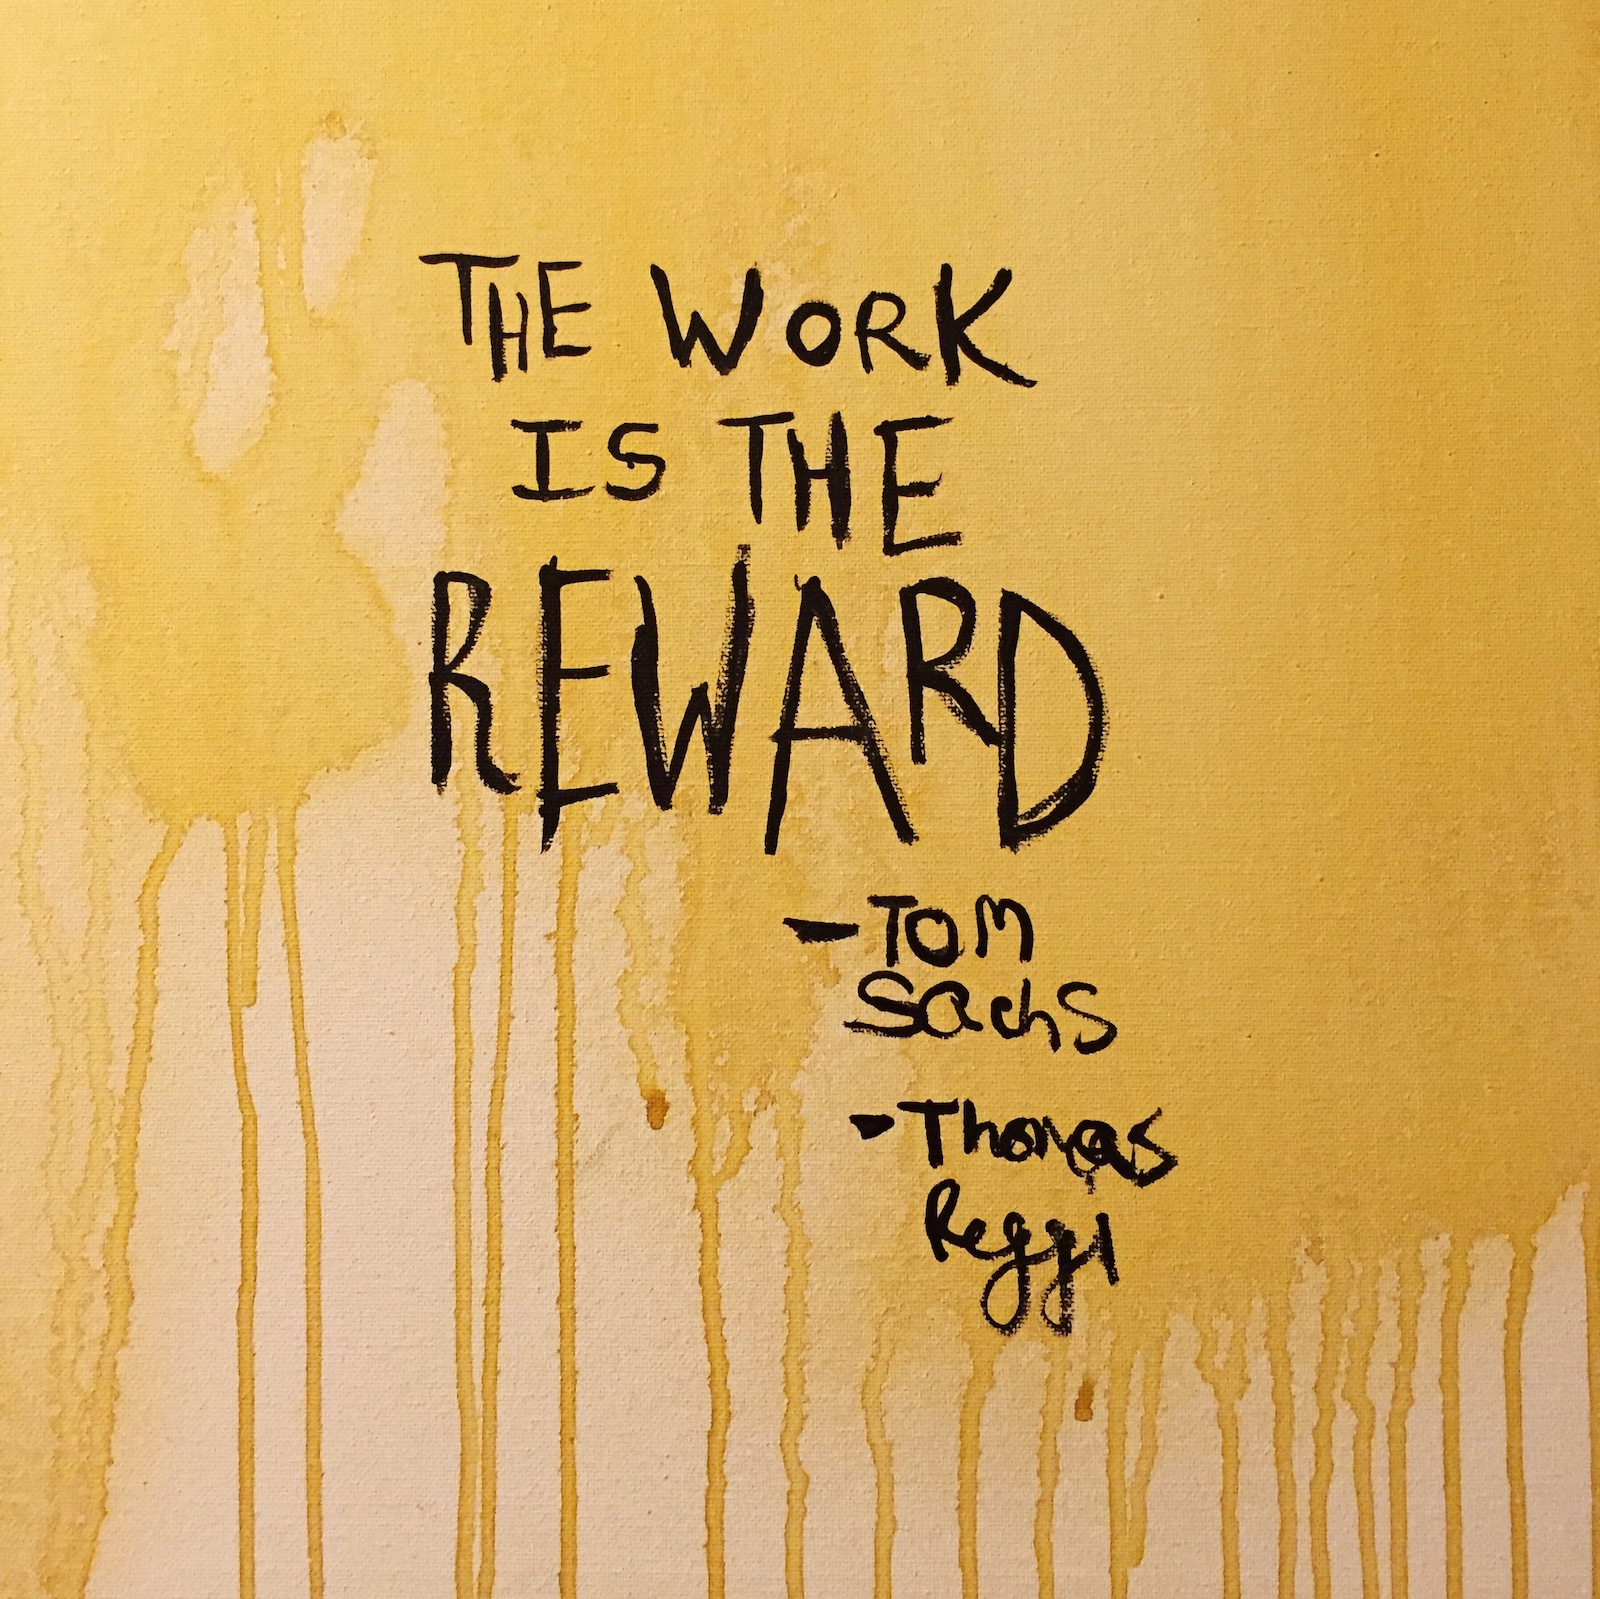 The work is the reward